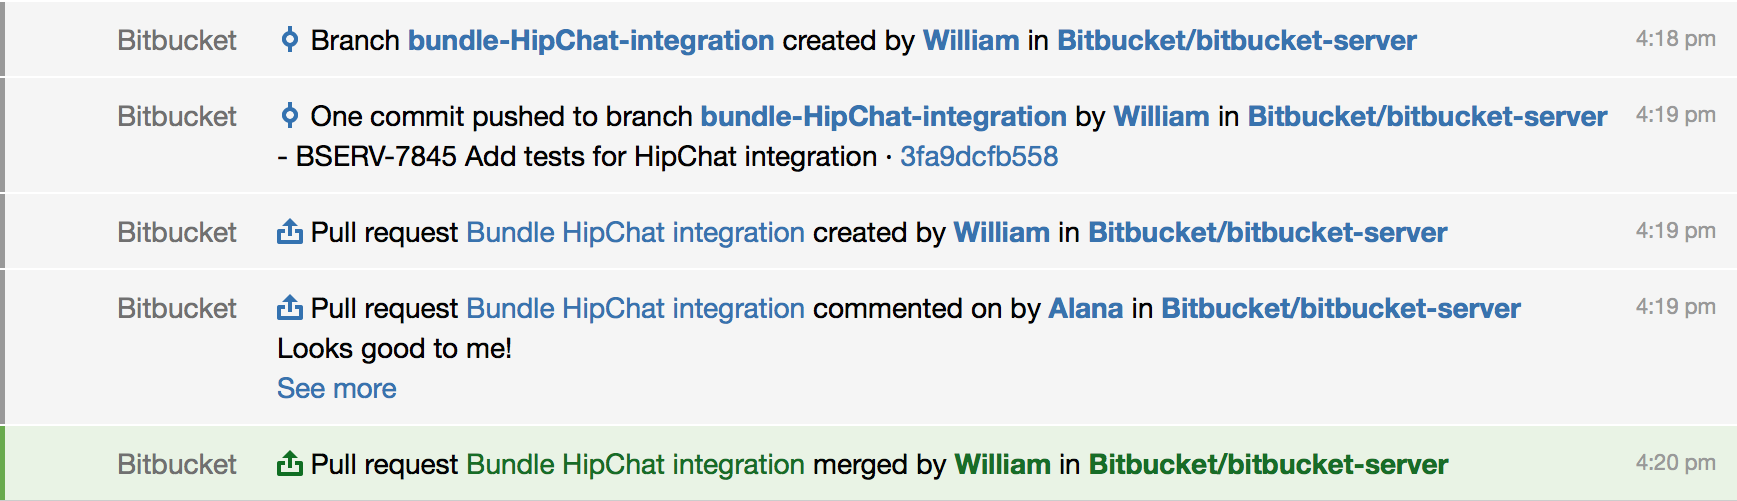 hipchat notifications atlassian documentation here s an example of what you might see from an atlassian hipchat room